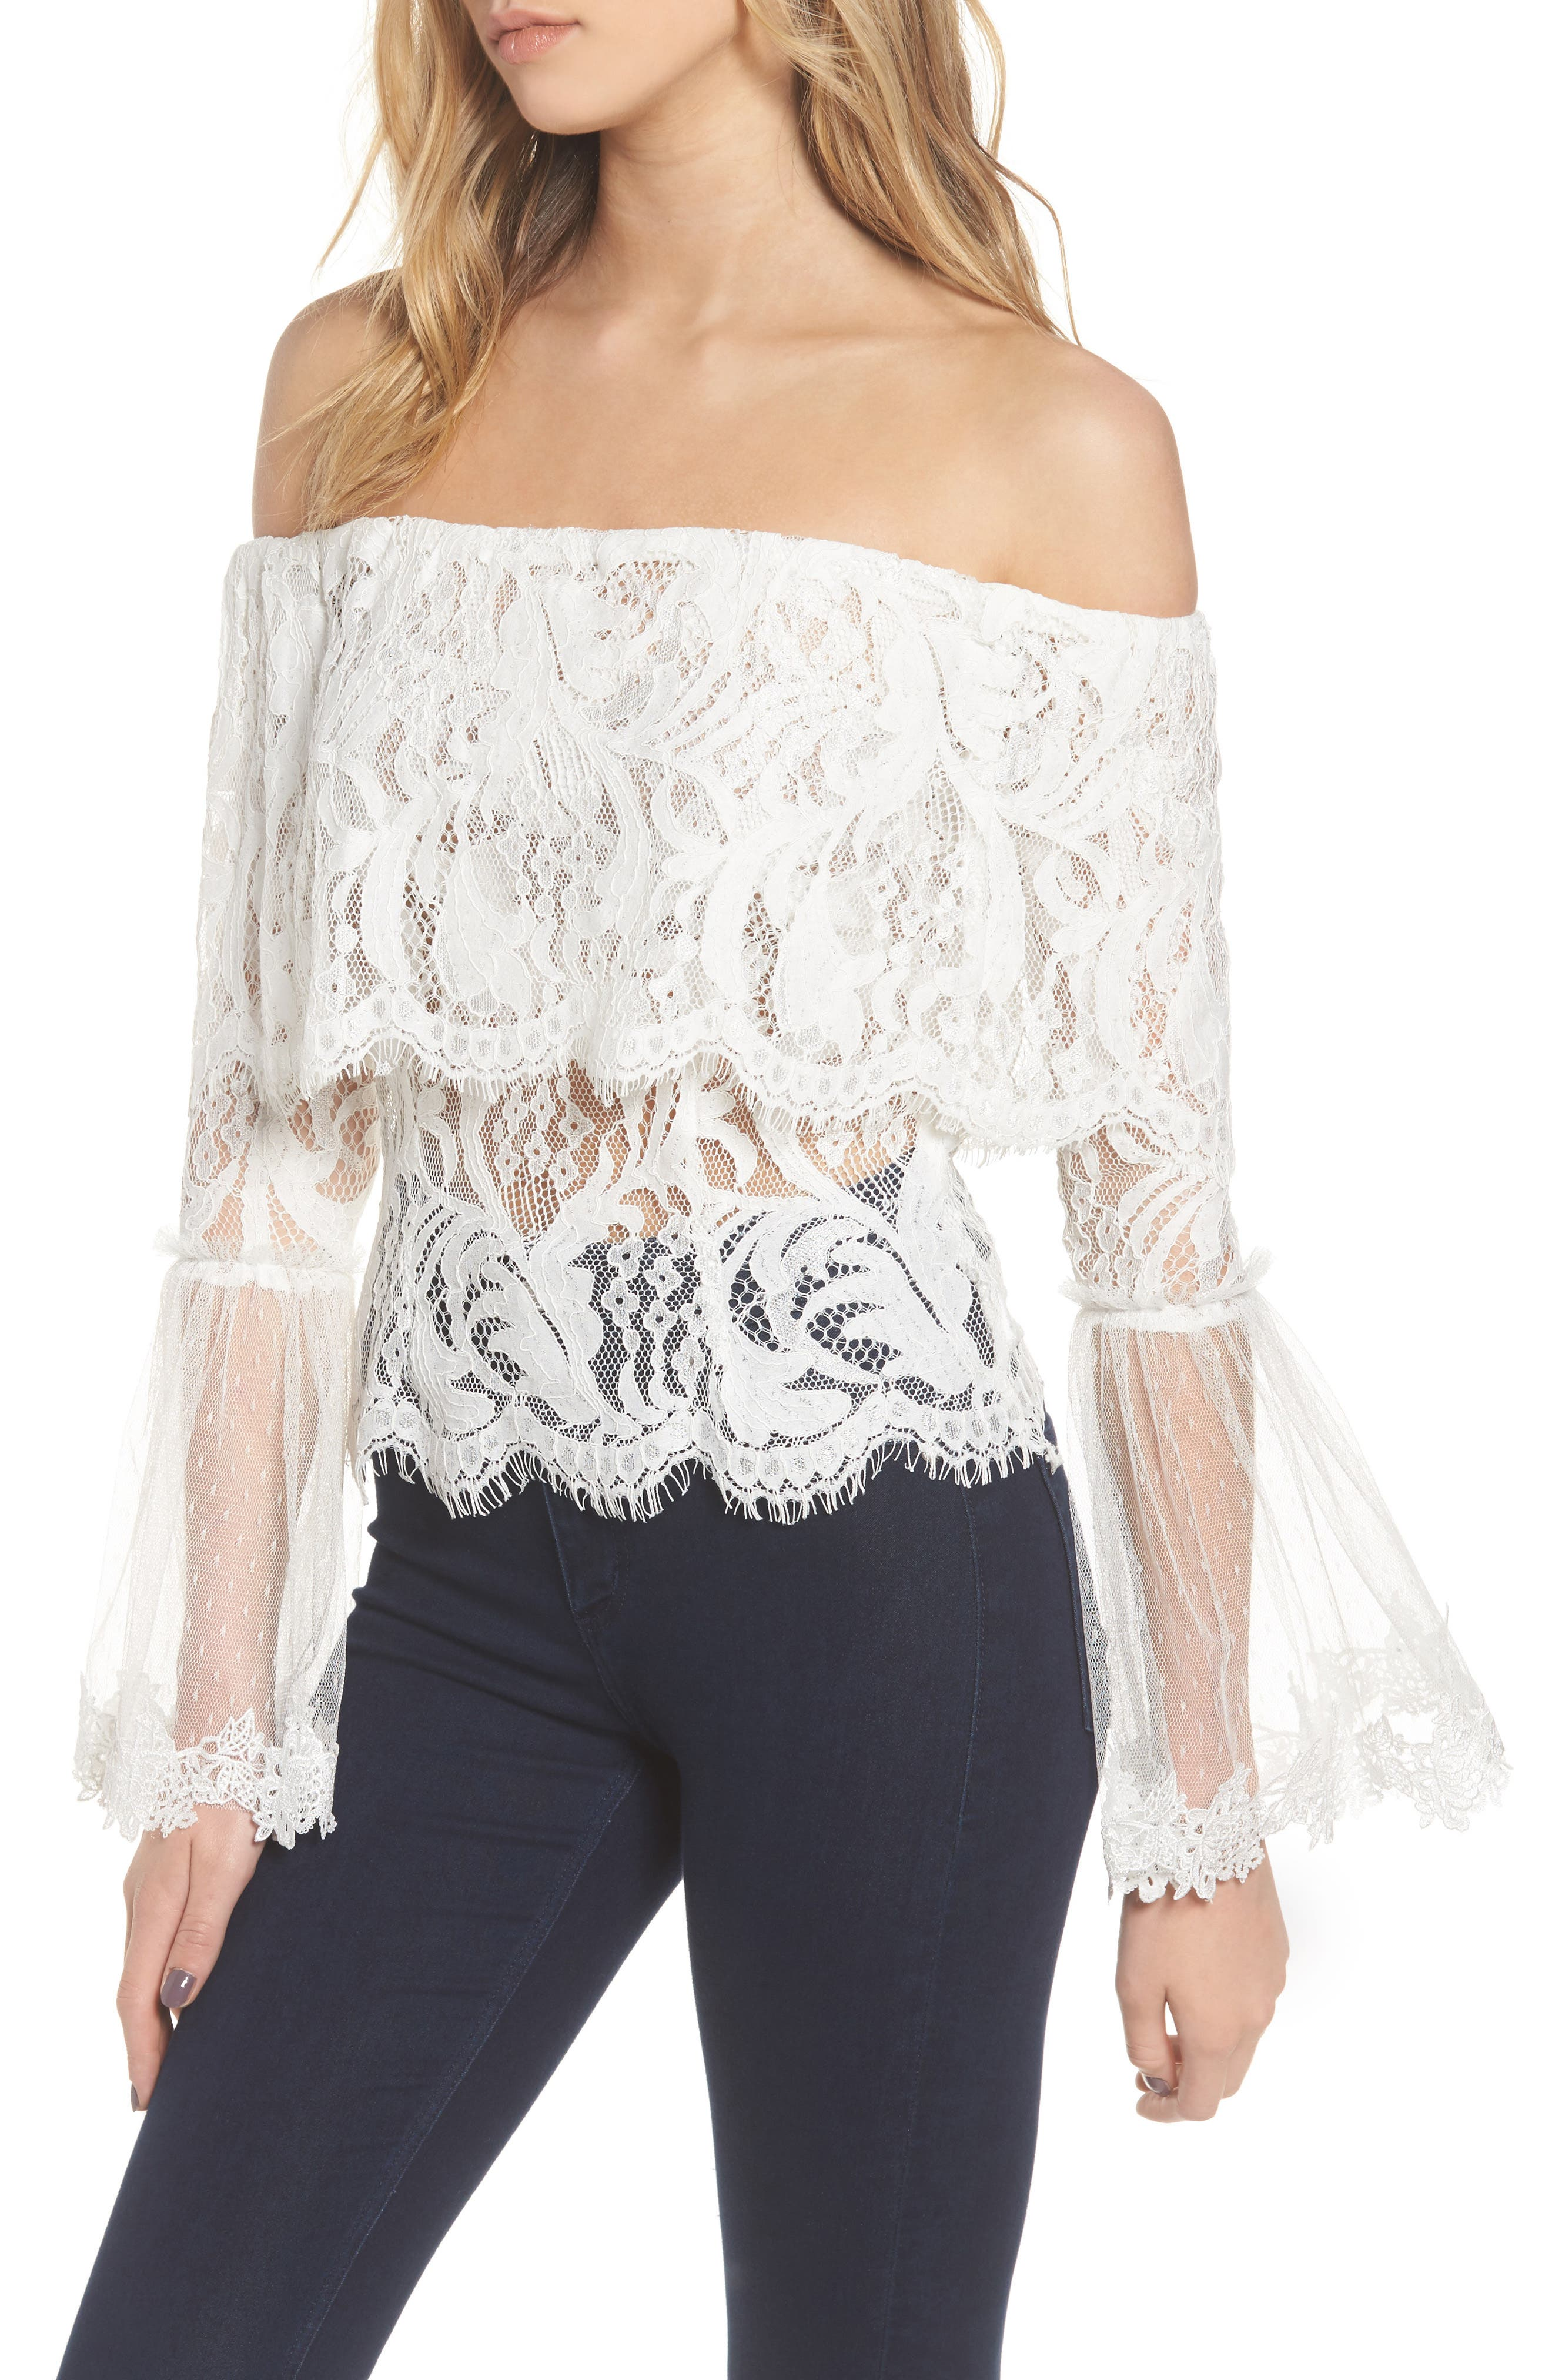 If You Dare Lace Off the Shoulder Blouse,                             Main thumbnail 1, color,                             Ivory